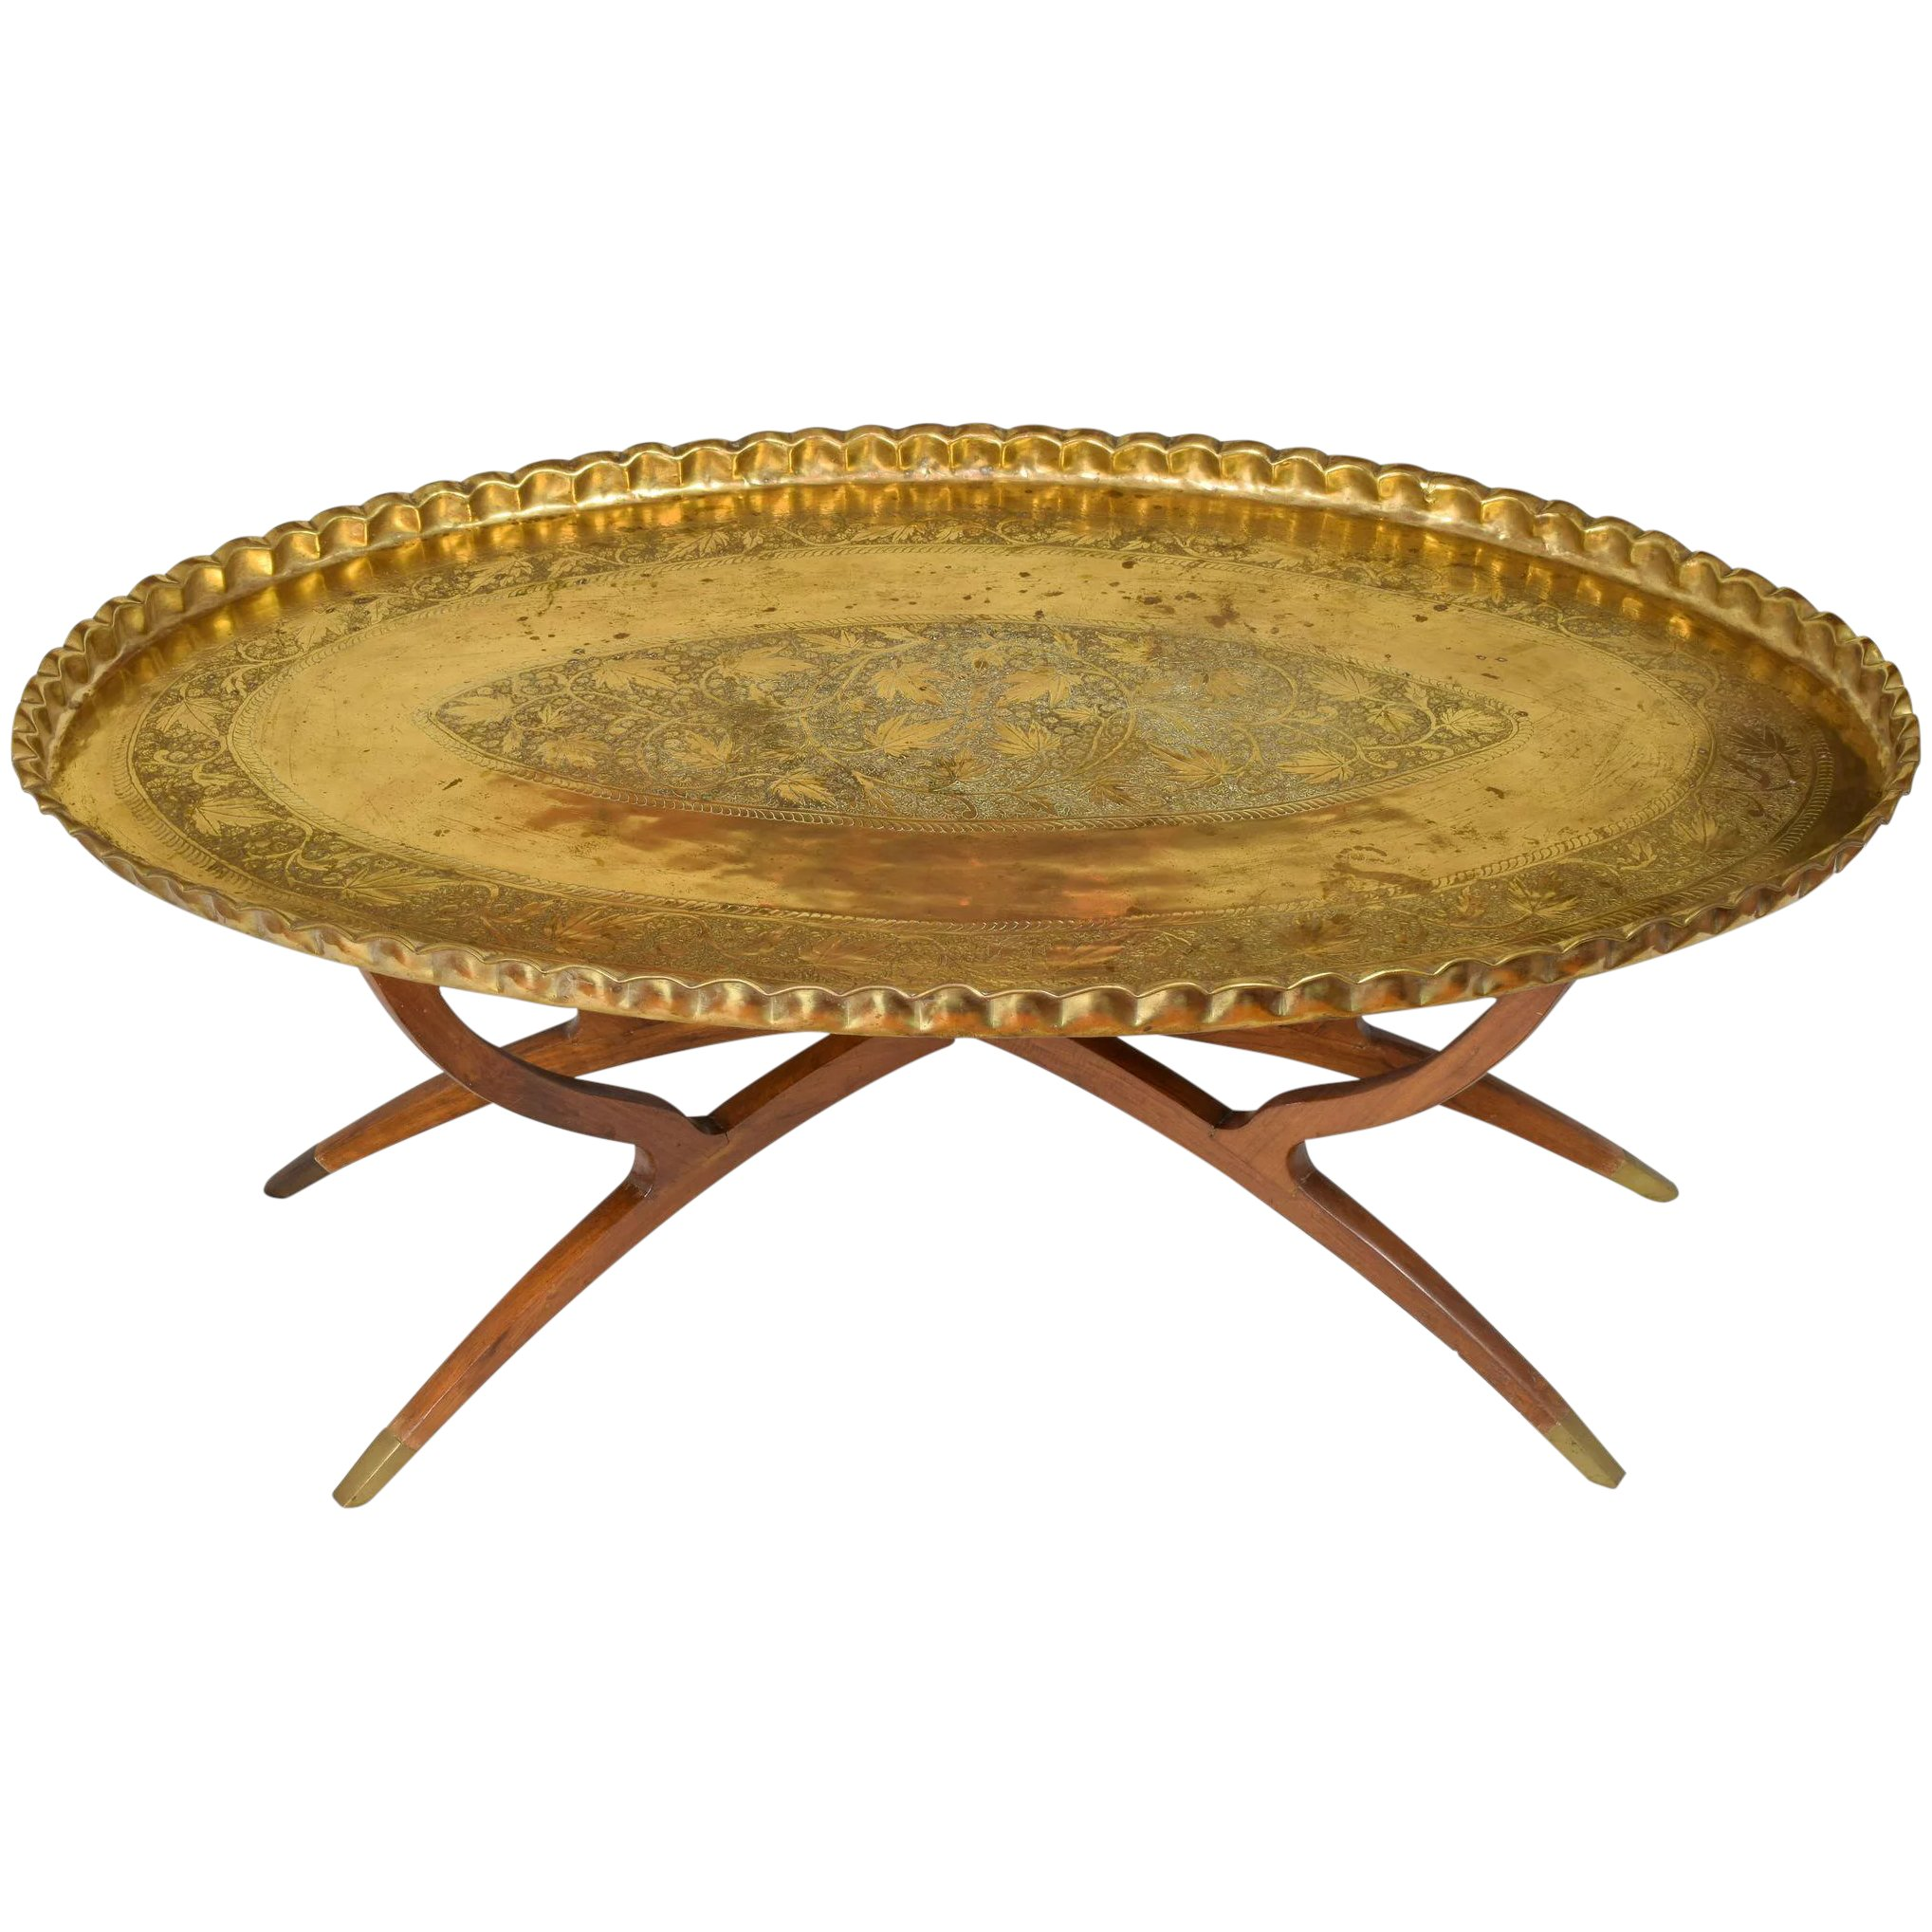 Picture of: Massive Mid Century Brass Teak Wood Tray Table The Old Light Warehouse Ruby Lane